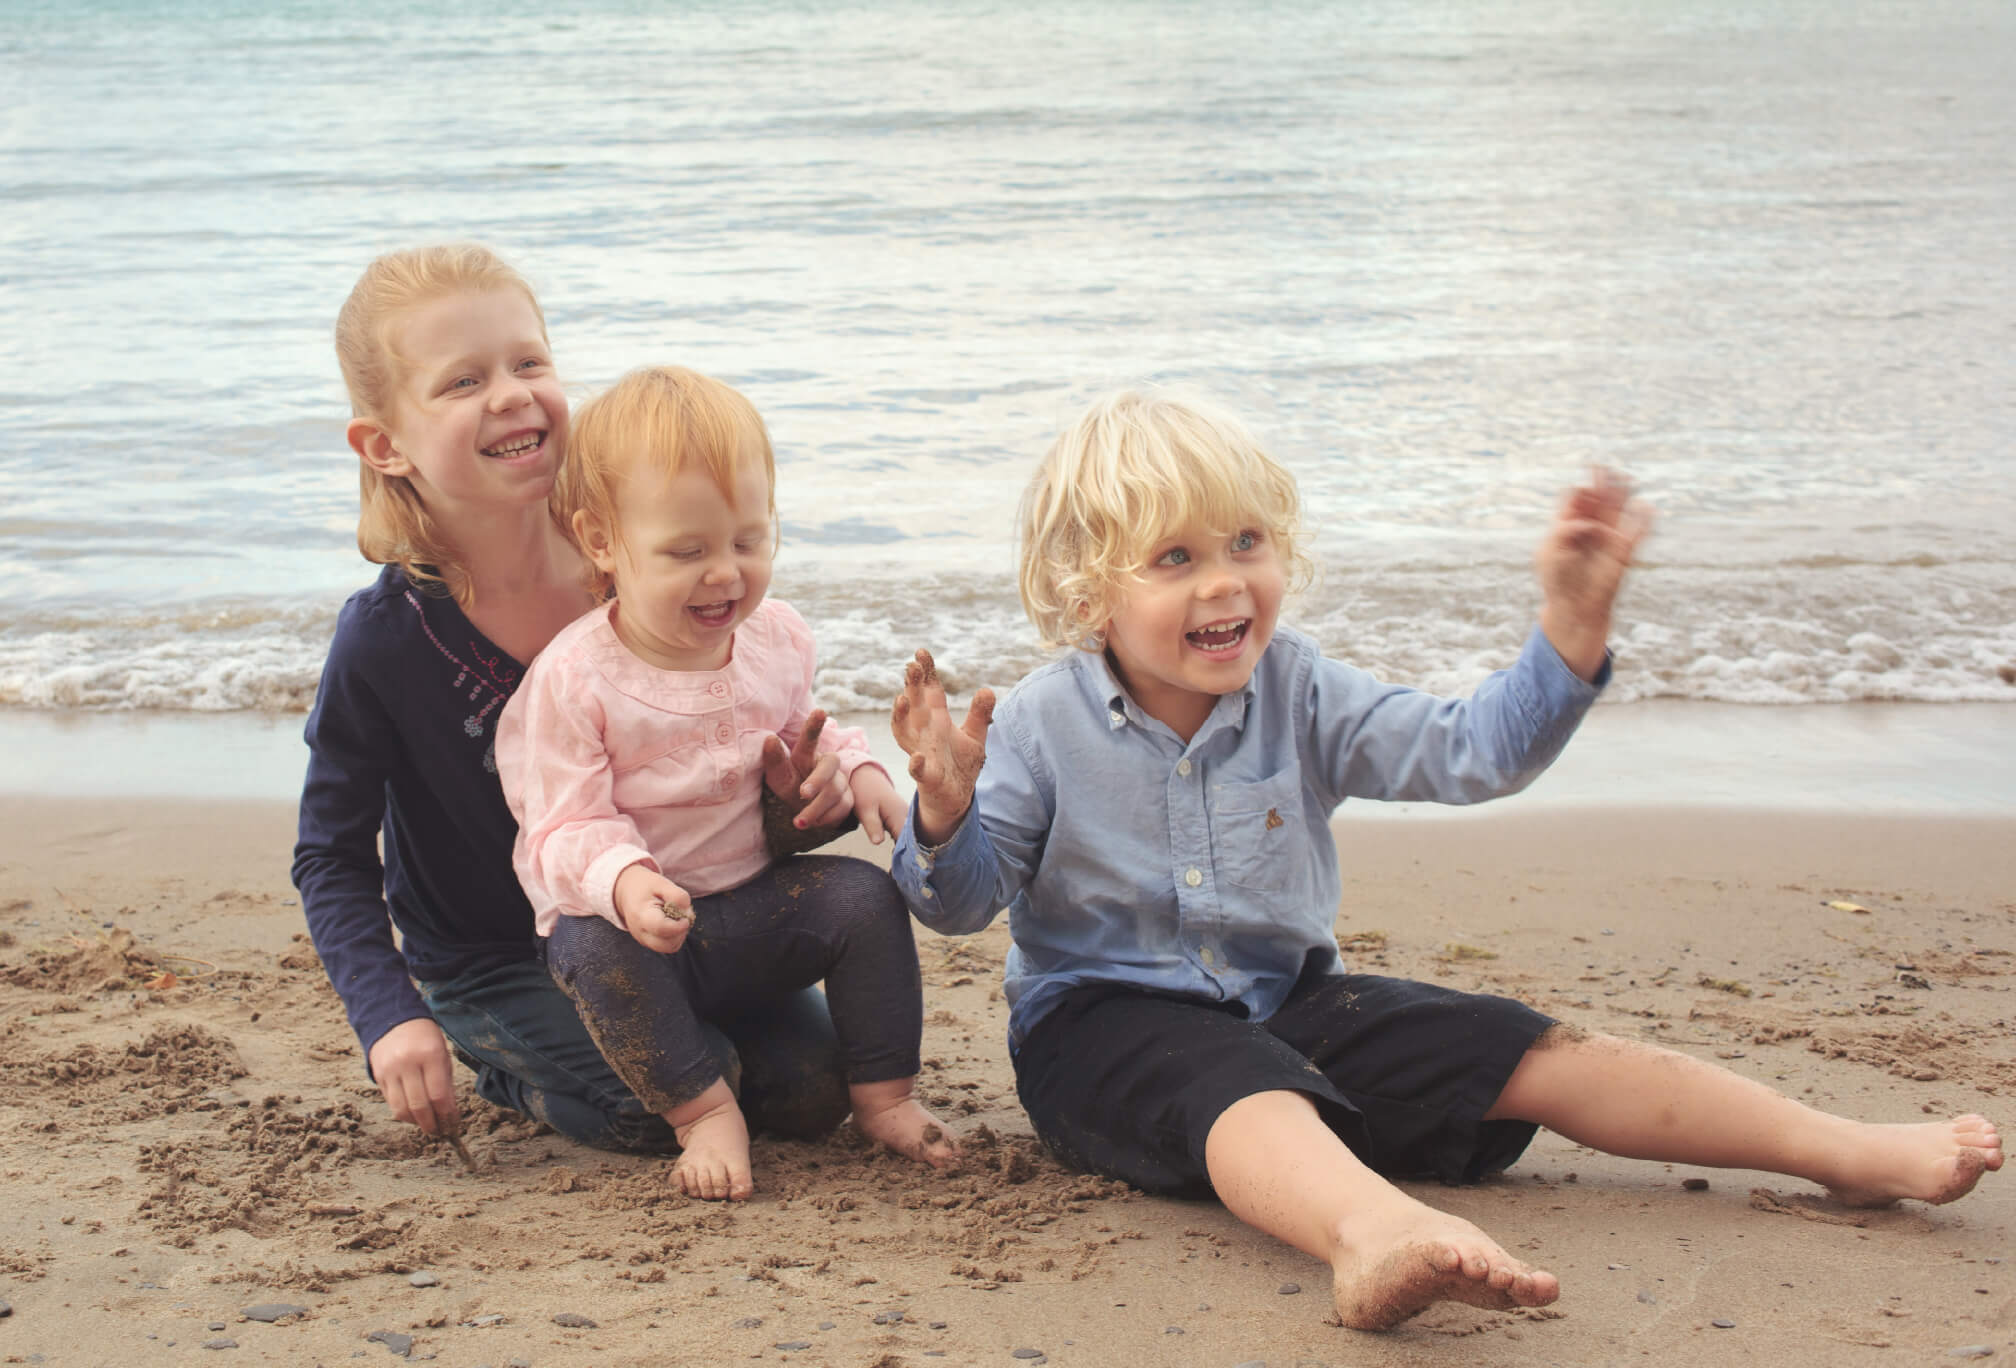 sibling photos on beach